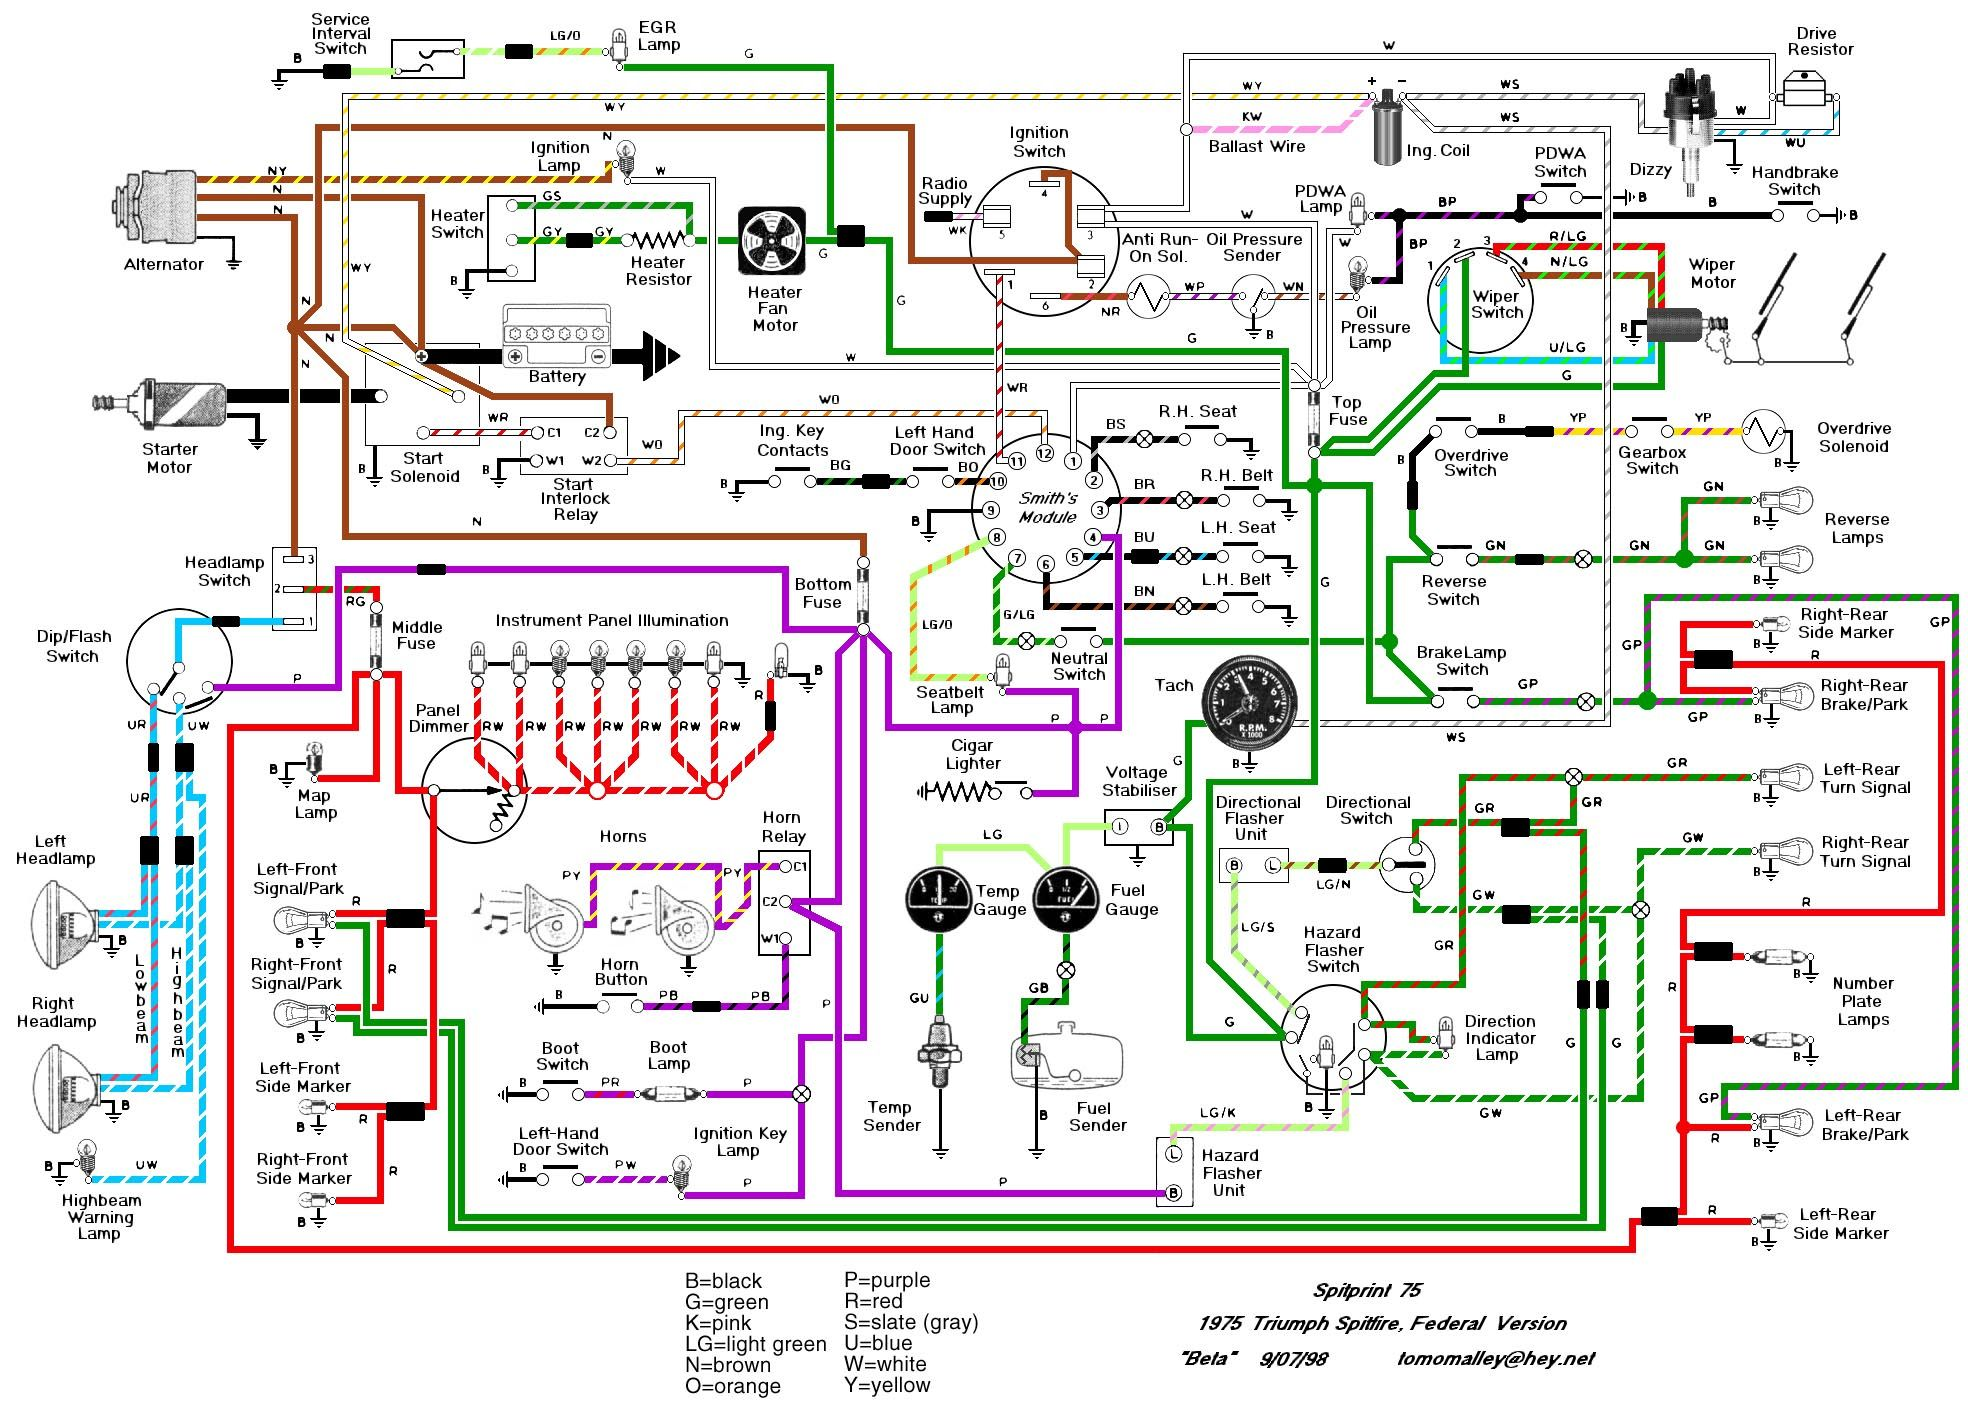 dpdt switch wiring diagram for kato wiring library car wiring diagrams